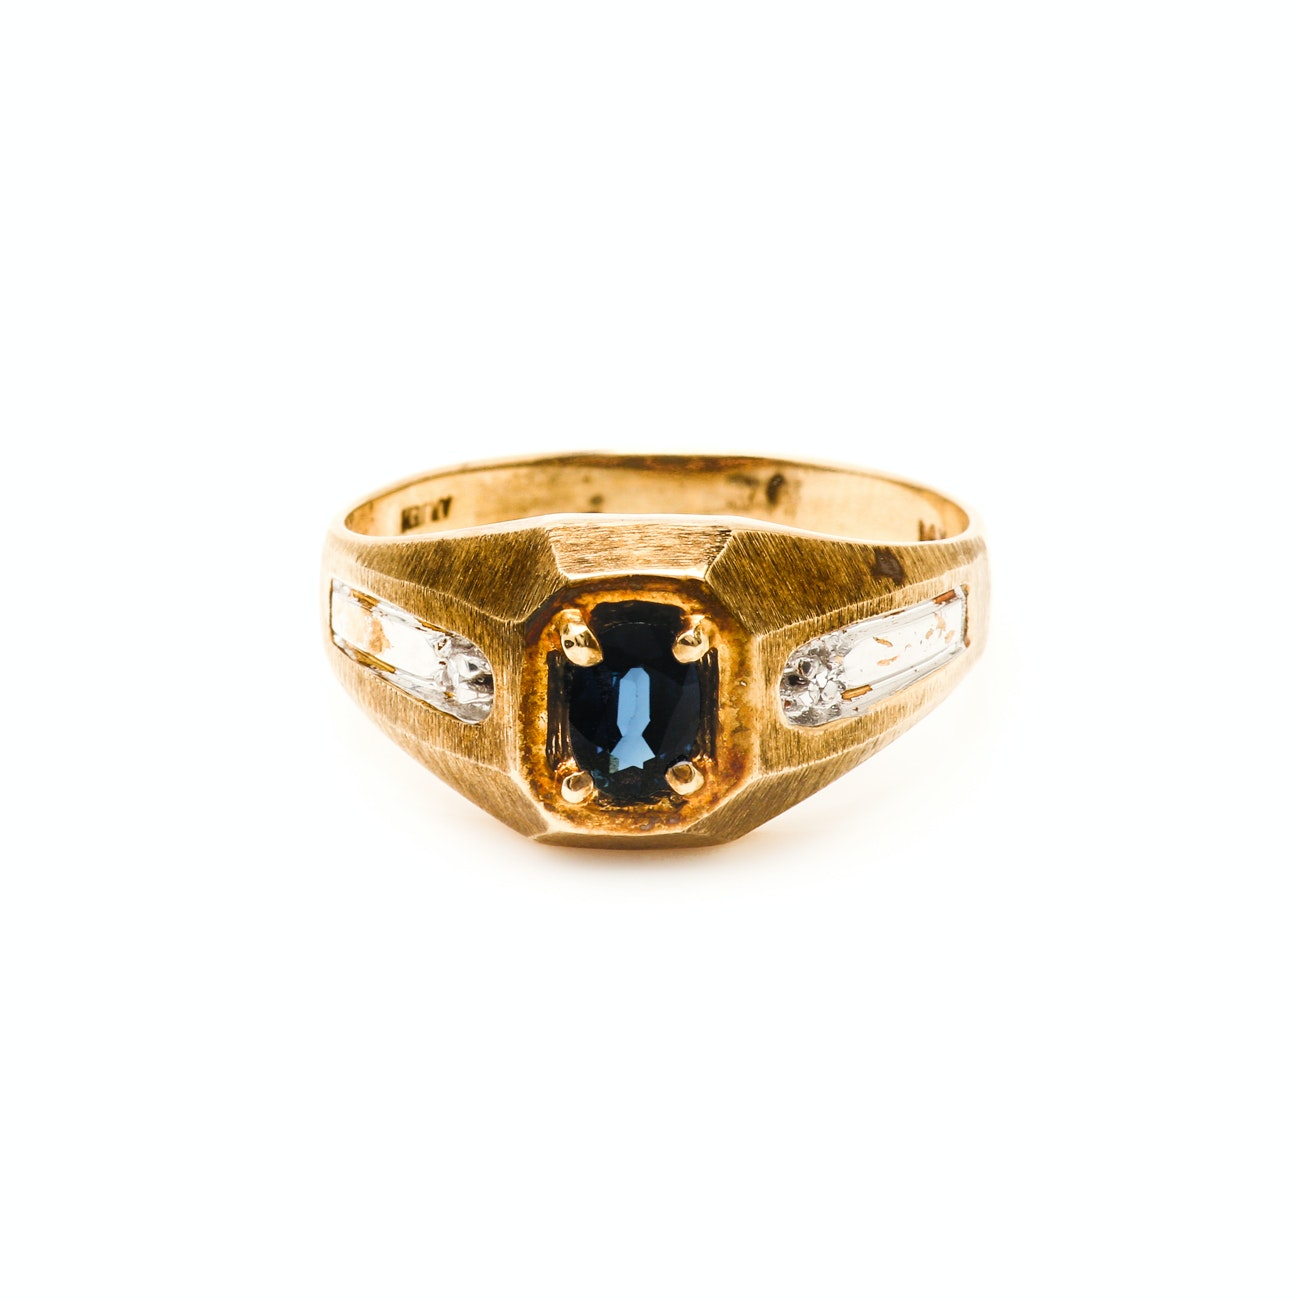 14K Yellow Gold Sapphire Ring With Diamond Accents